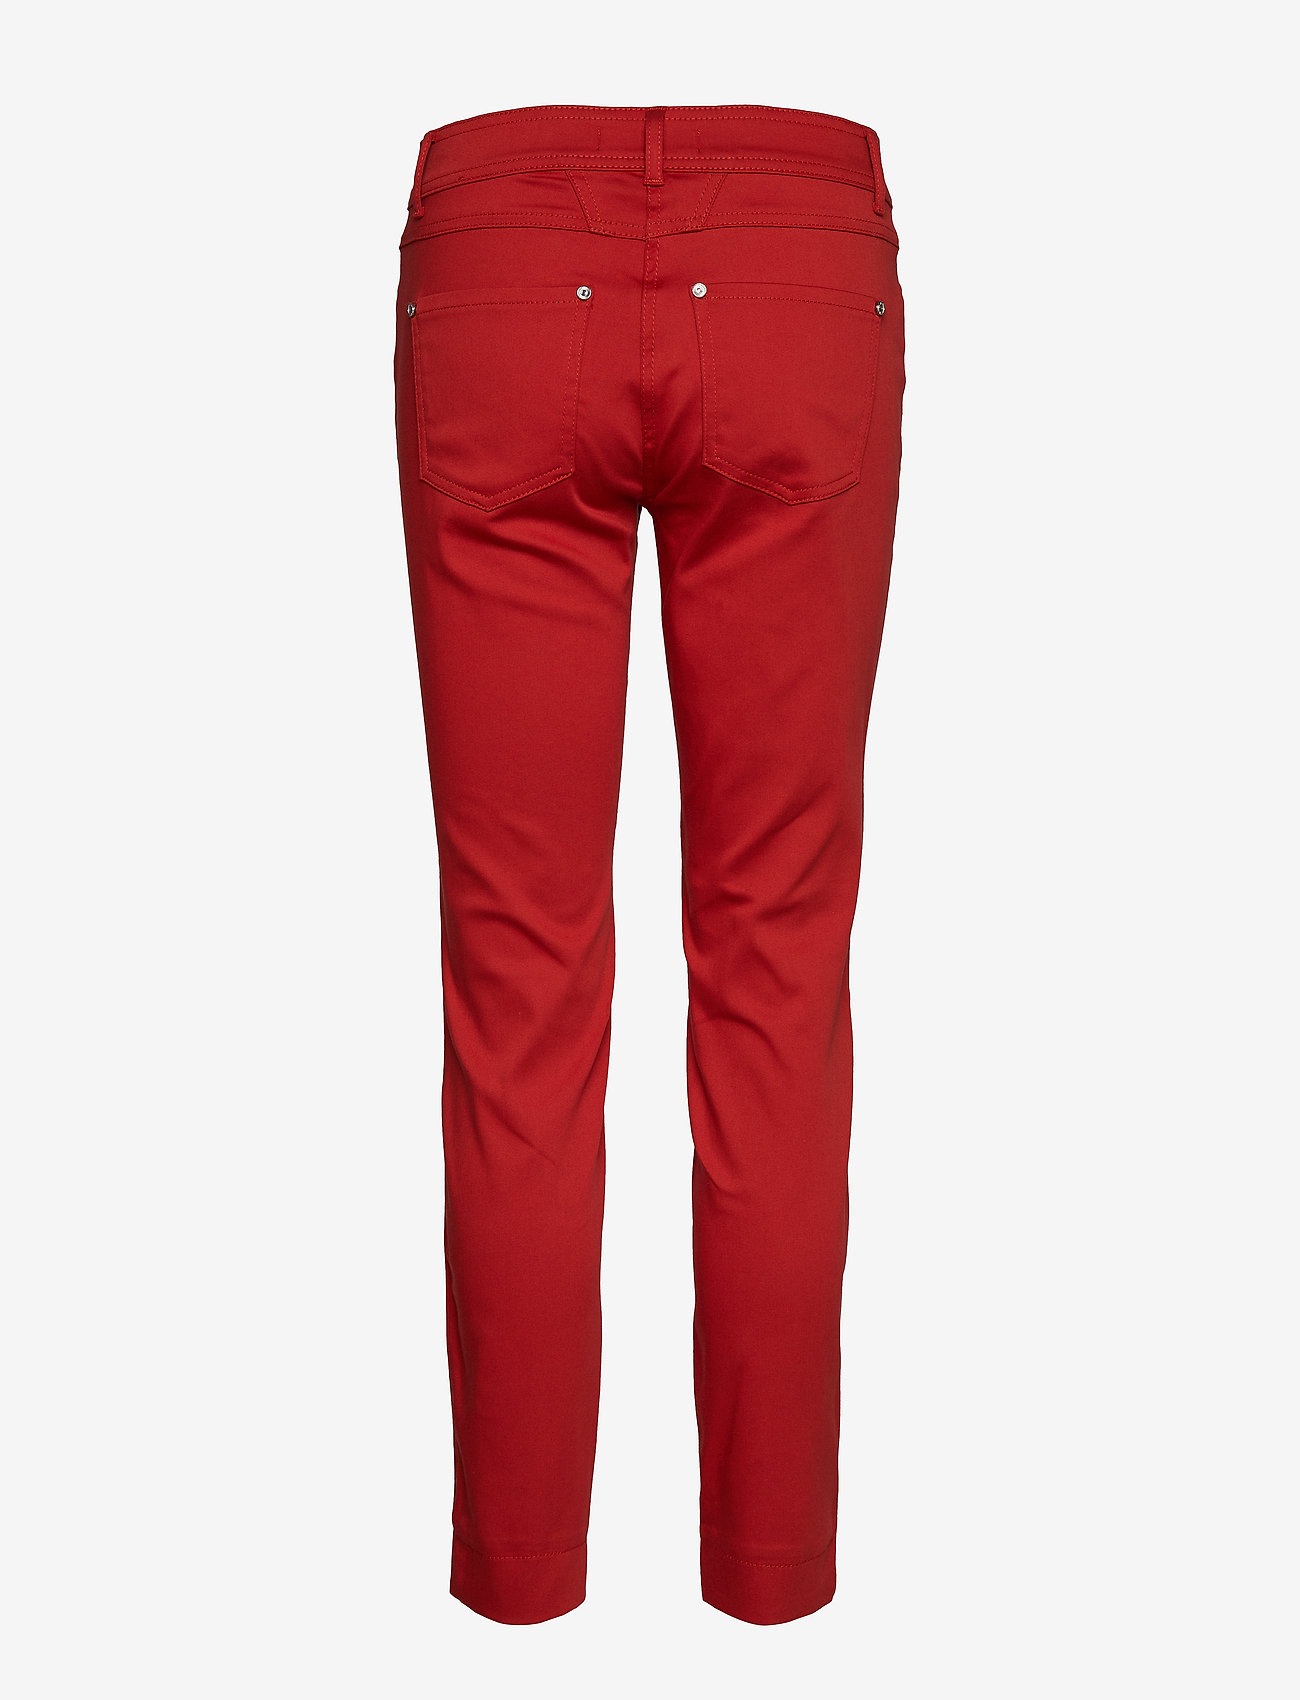 Taifun - CROP LEISURE TROUSER - straight leg trousers - spicy red